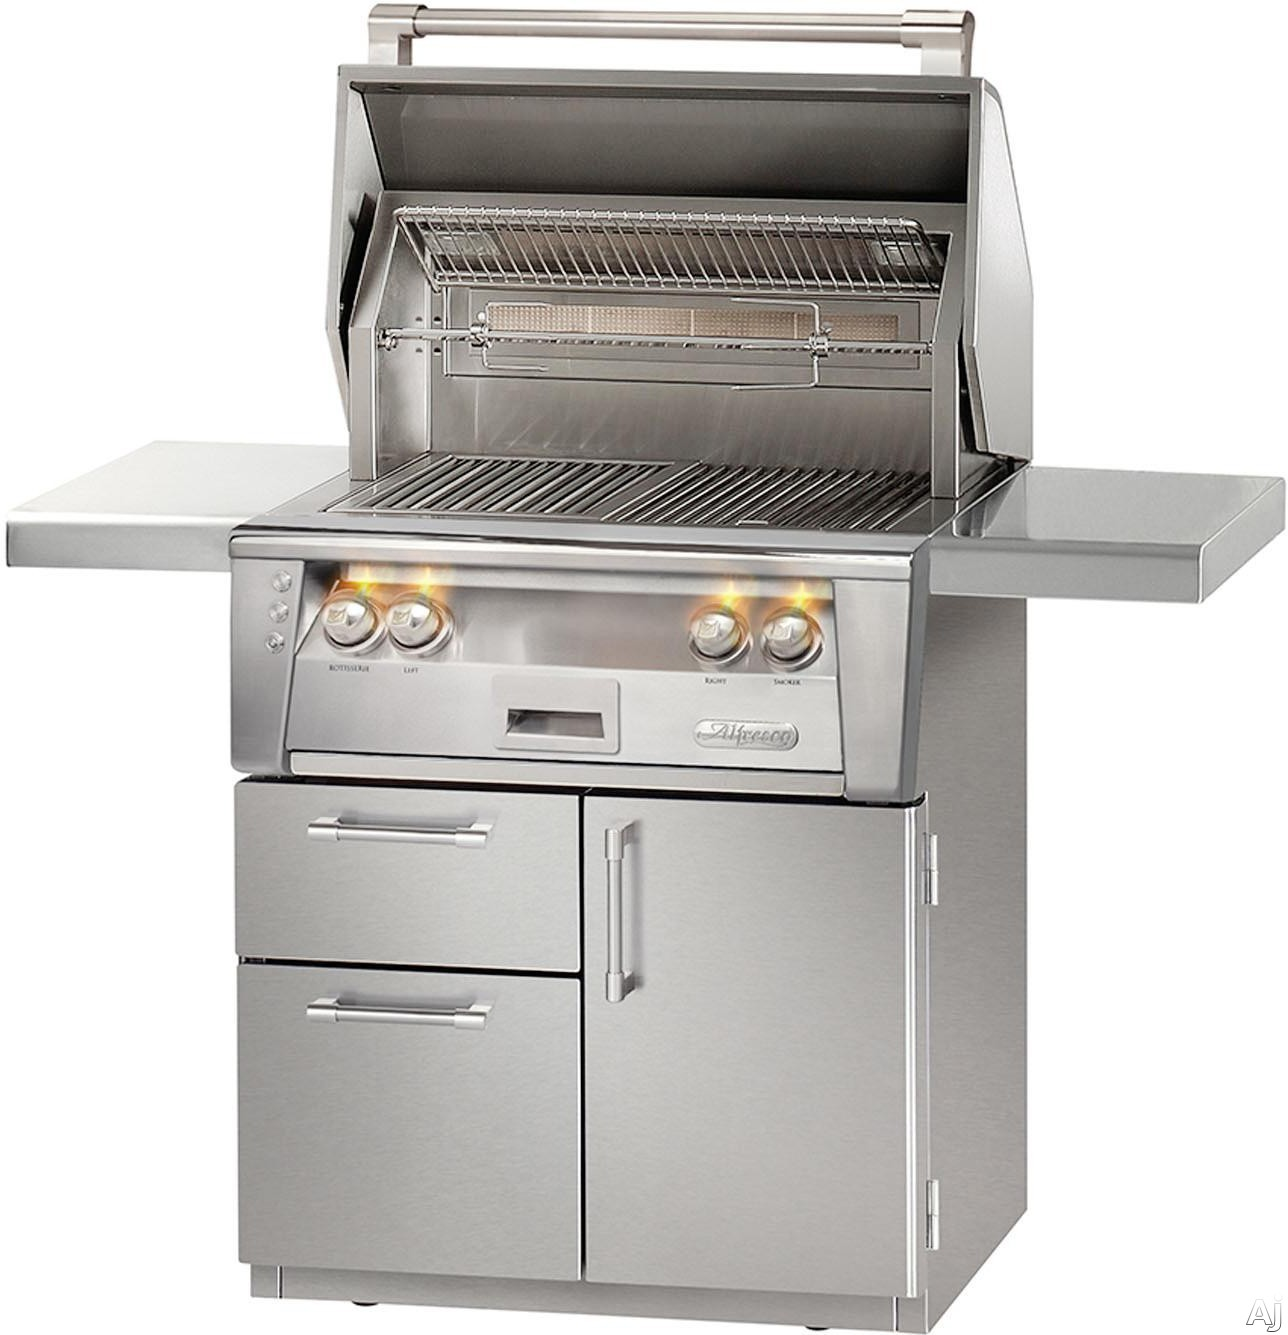 """Alfresco ALXE30SZCD 30 Inch Grill with 542 sq. in. Grilling Surface, Two 27,500 BTU Main Burners, Infrared Sear Zoneâ""""¢, Integrated Rotisserie, Smoker and Herb Infuser System, 3-Position Warming Rack, Halogen Lighting and Deluxe Cart"""